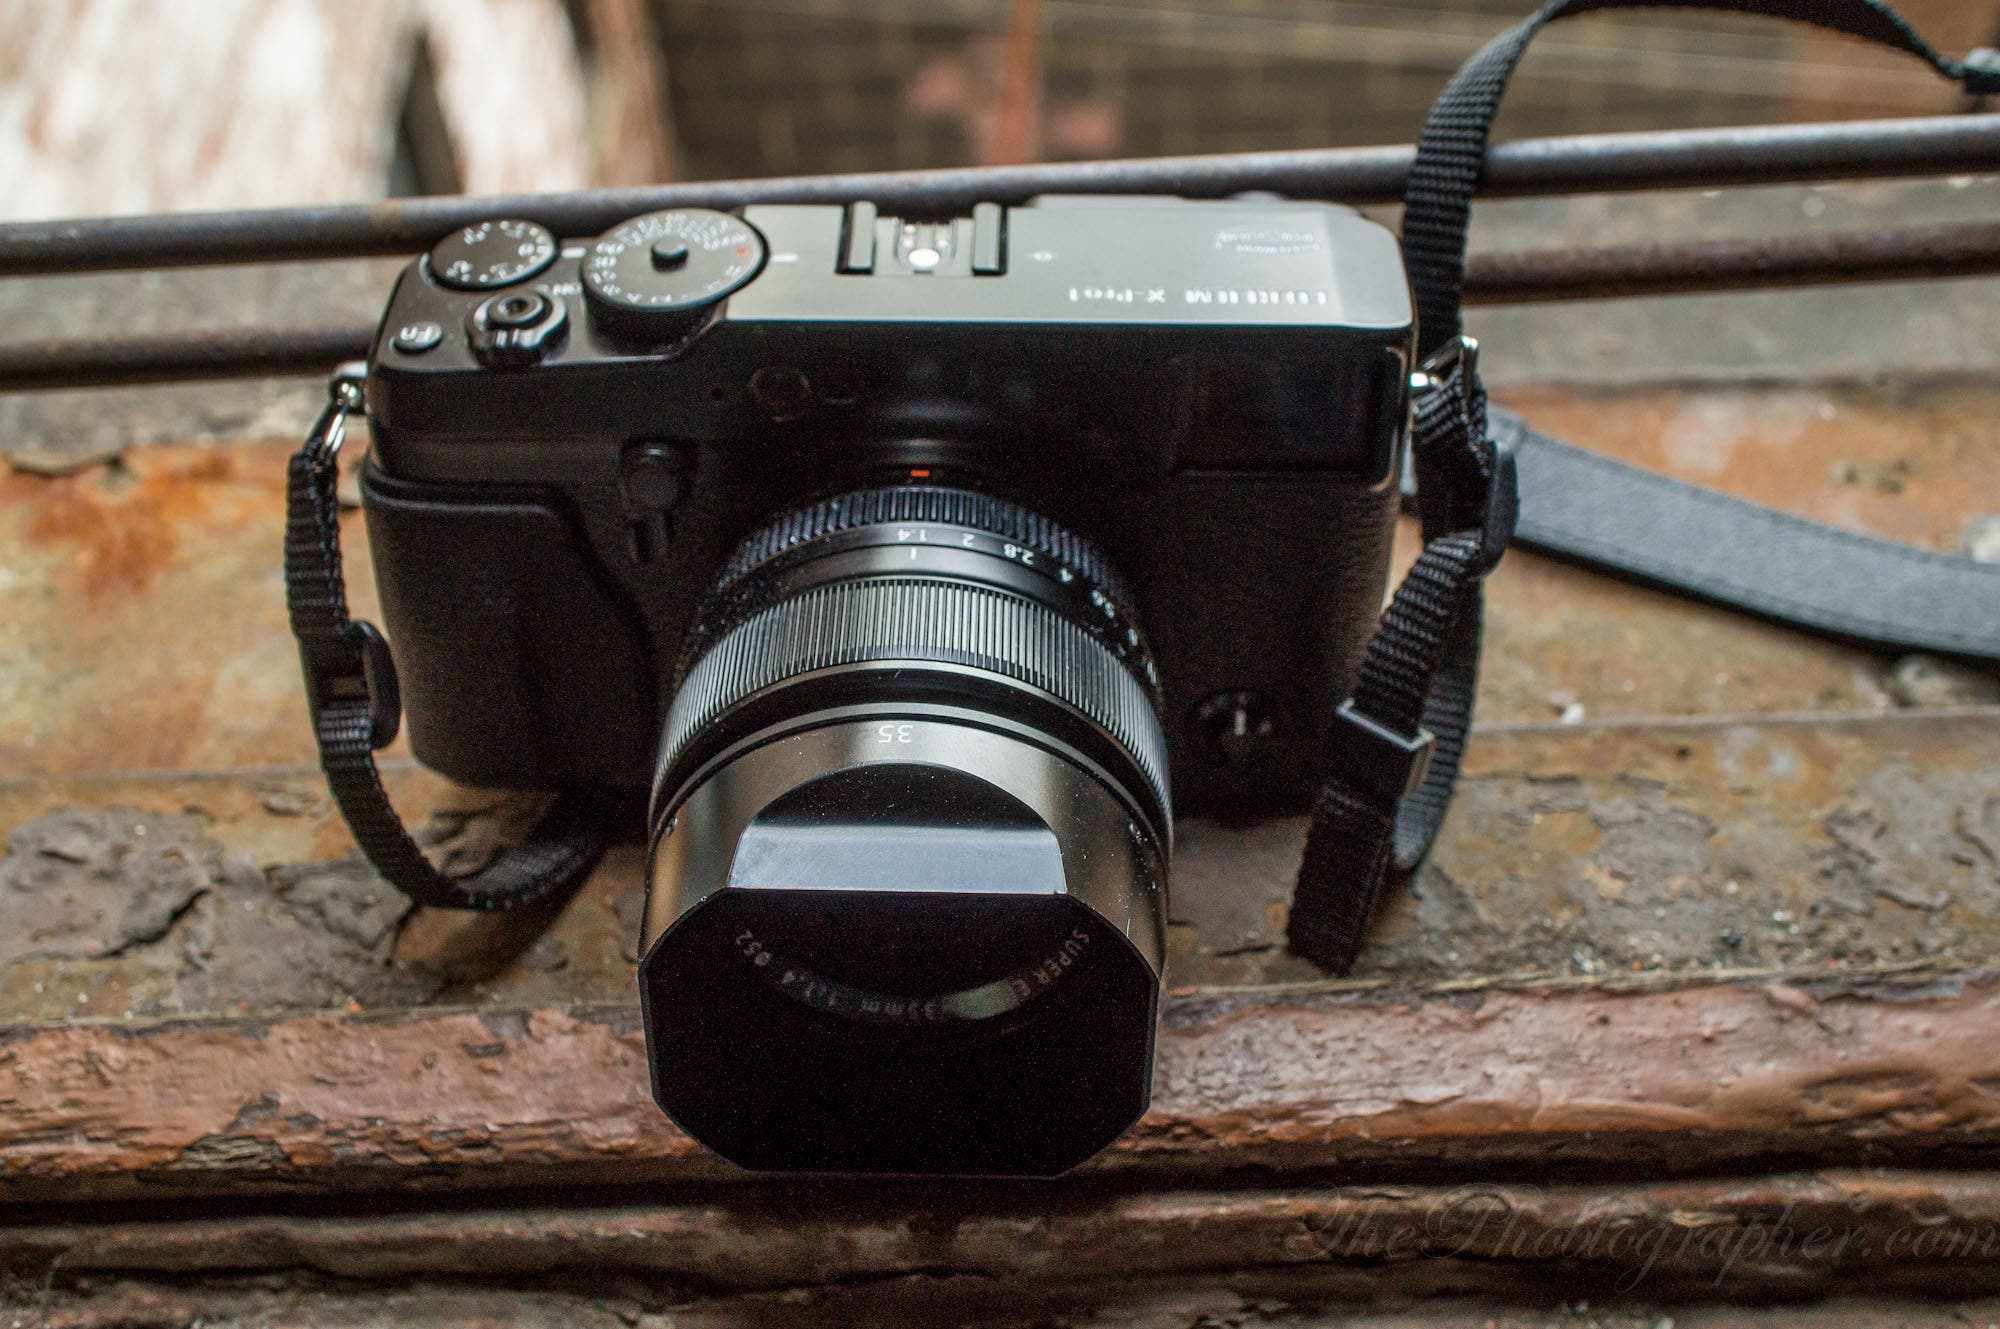 Which One Canon 5d Mk Ii Vs Canon 5d Mk Iii Vs Fujifilm X